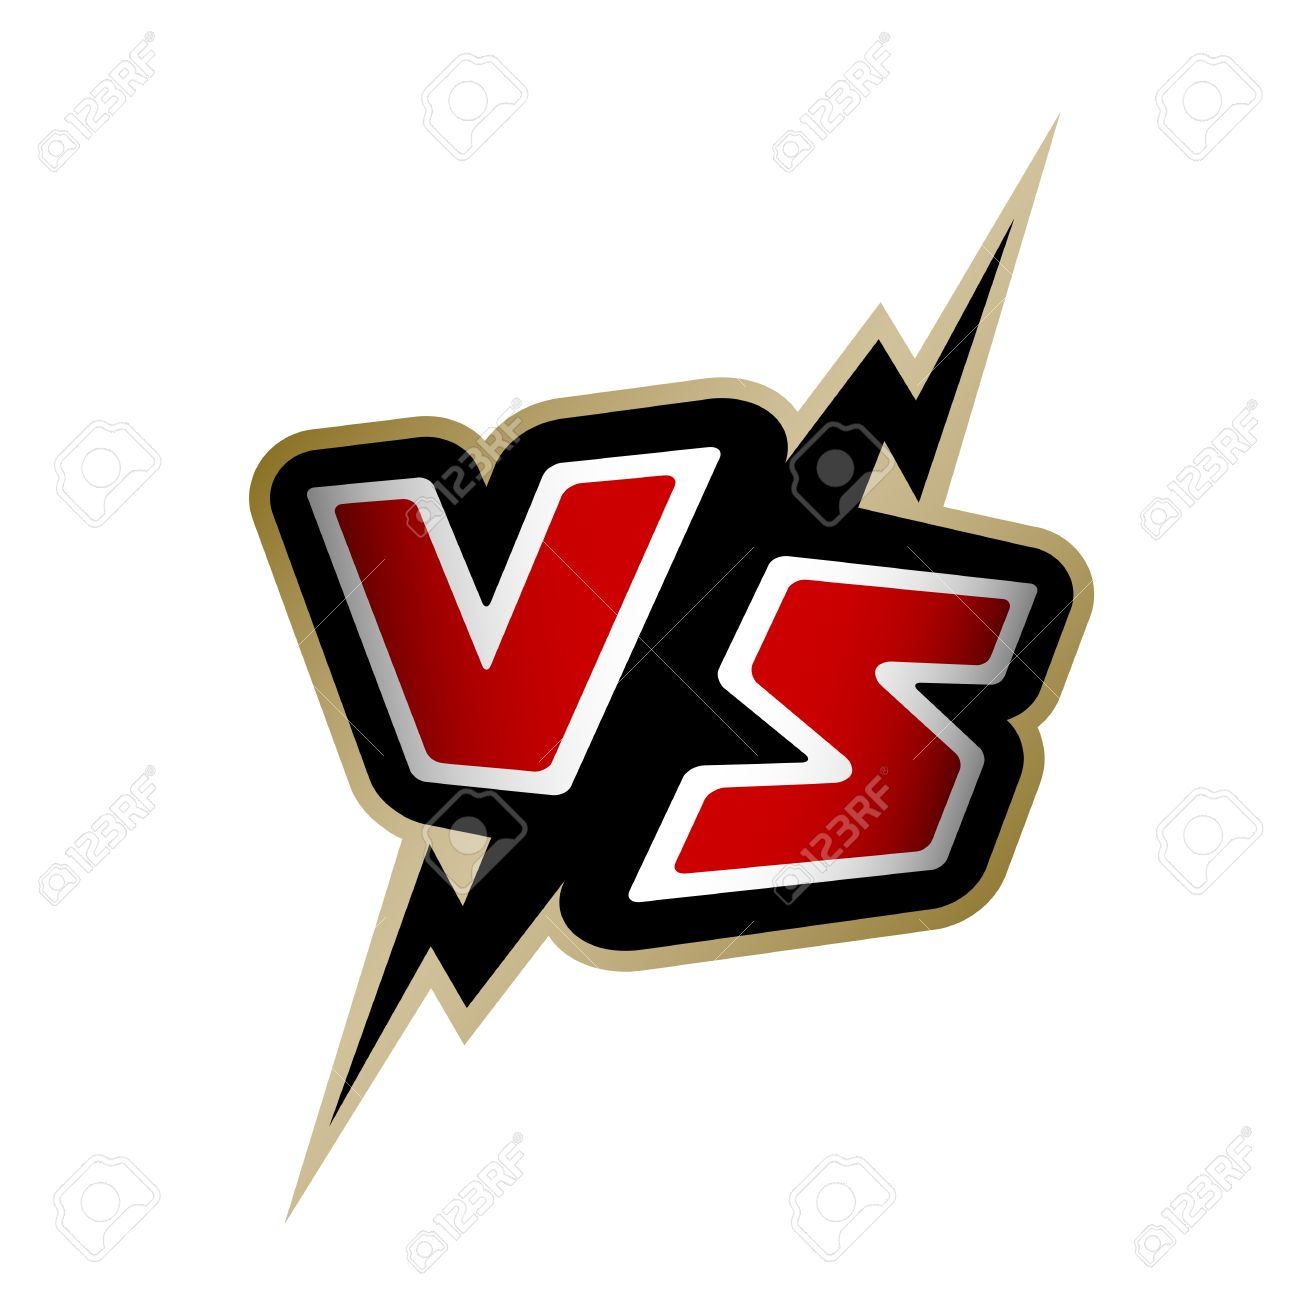 versus letters vs logo vector illustration royalty free cliparts